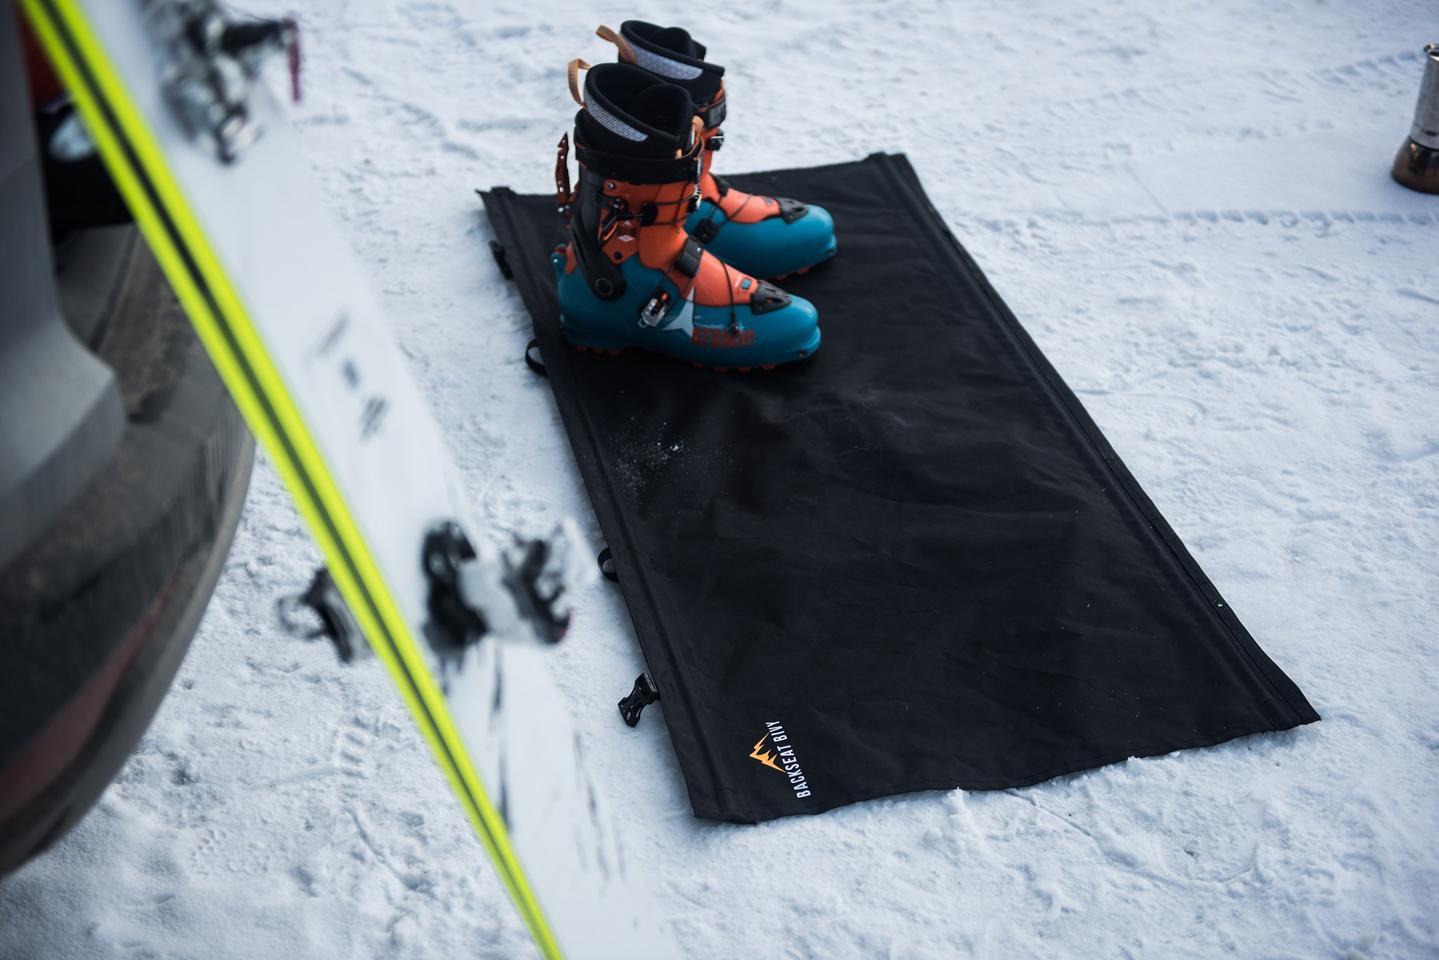 When not in use as a bed extender (suspender?), the Backseat Bivy can be used as a storage or entry mat ... just don't get it too wet or dirty if you plan to sleep on it later